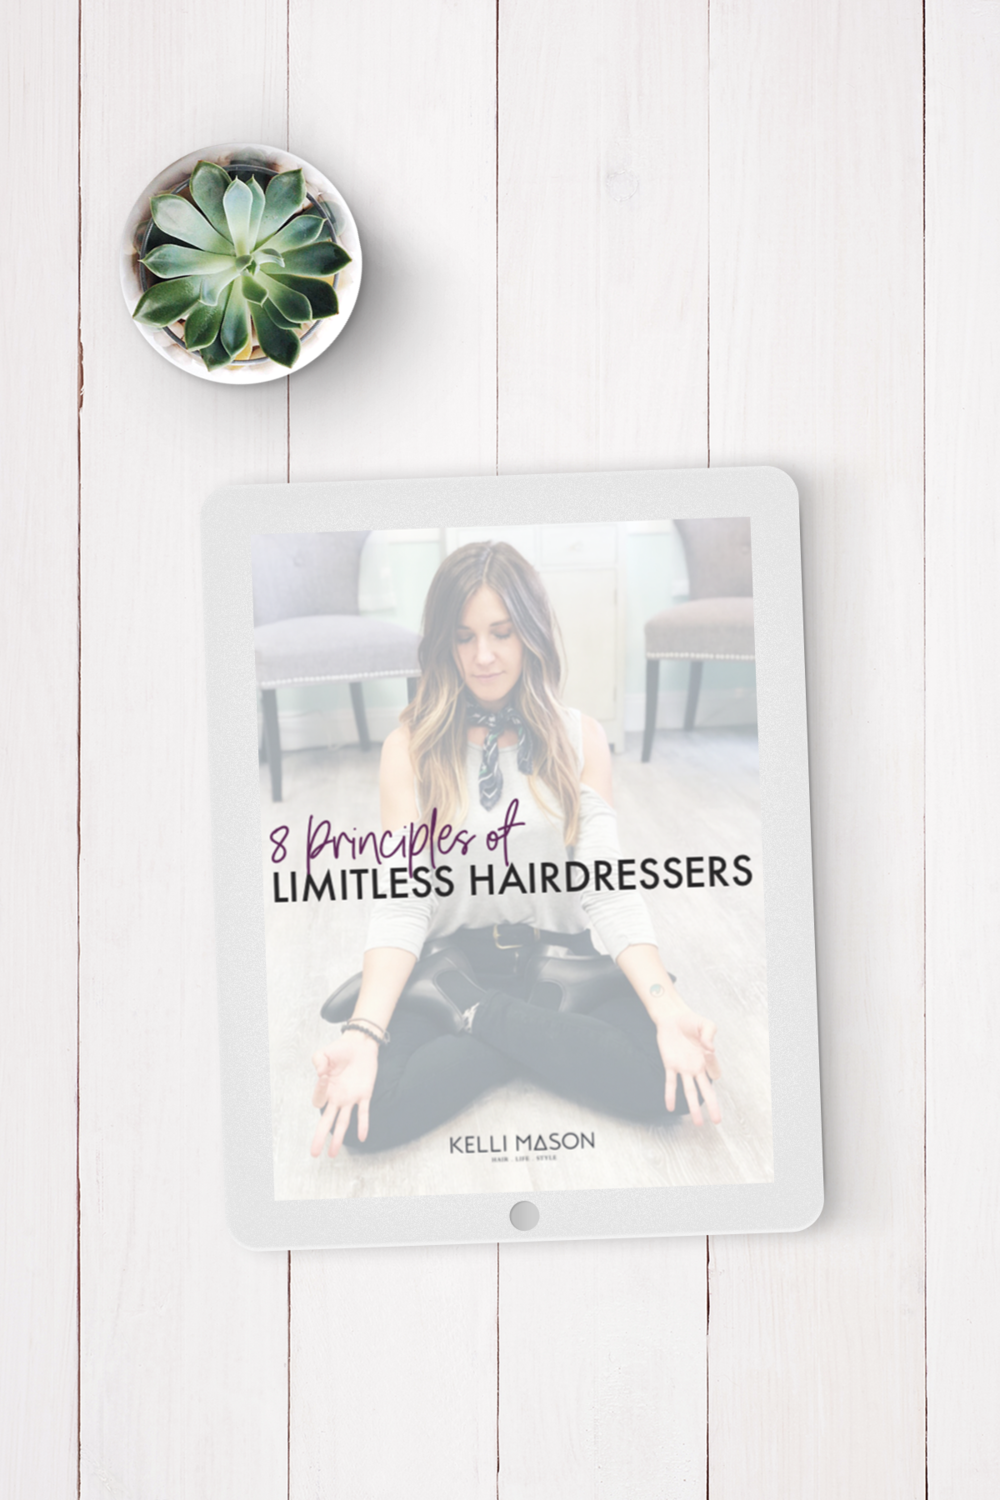 The 8 principles of being a limitless hairdresser were born.  These are basis of my teachings and serve as the core of all that will be to come.